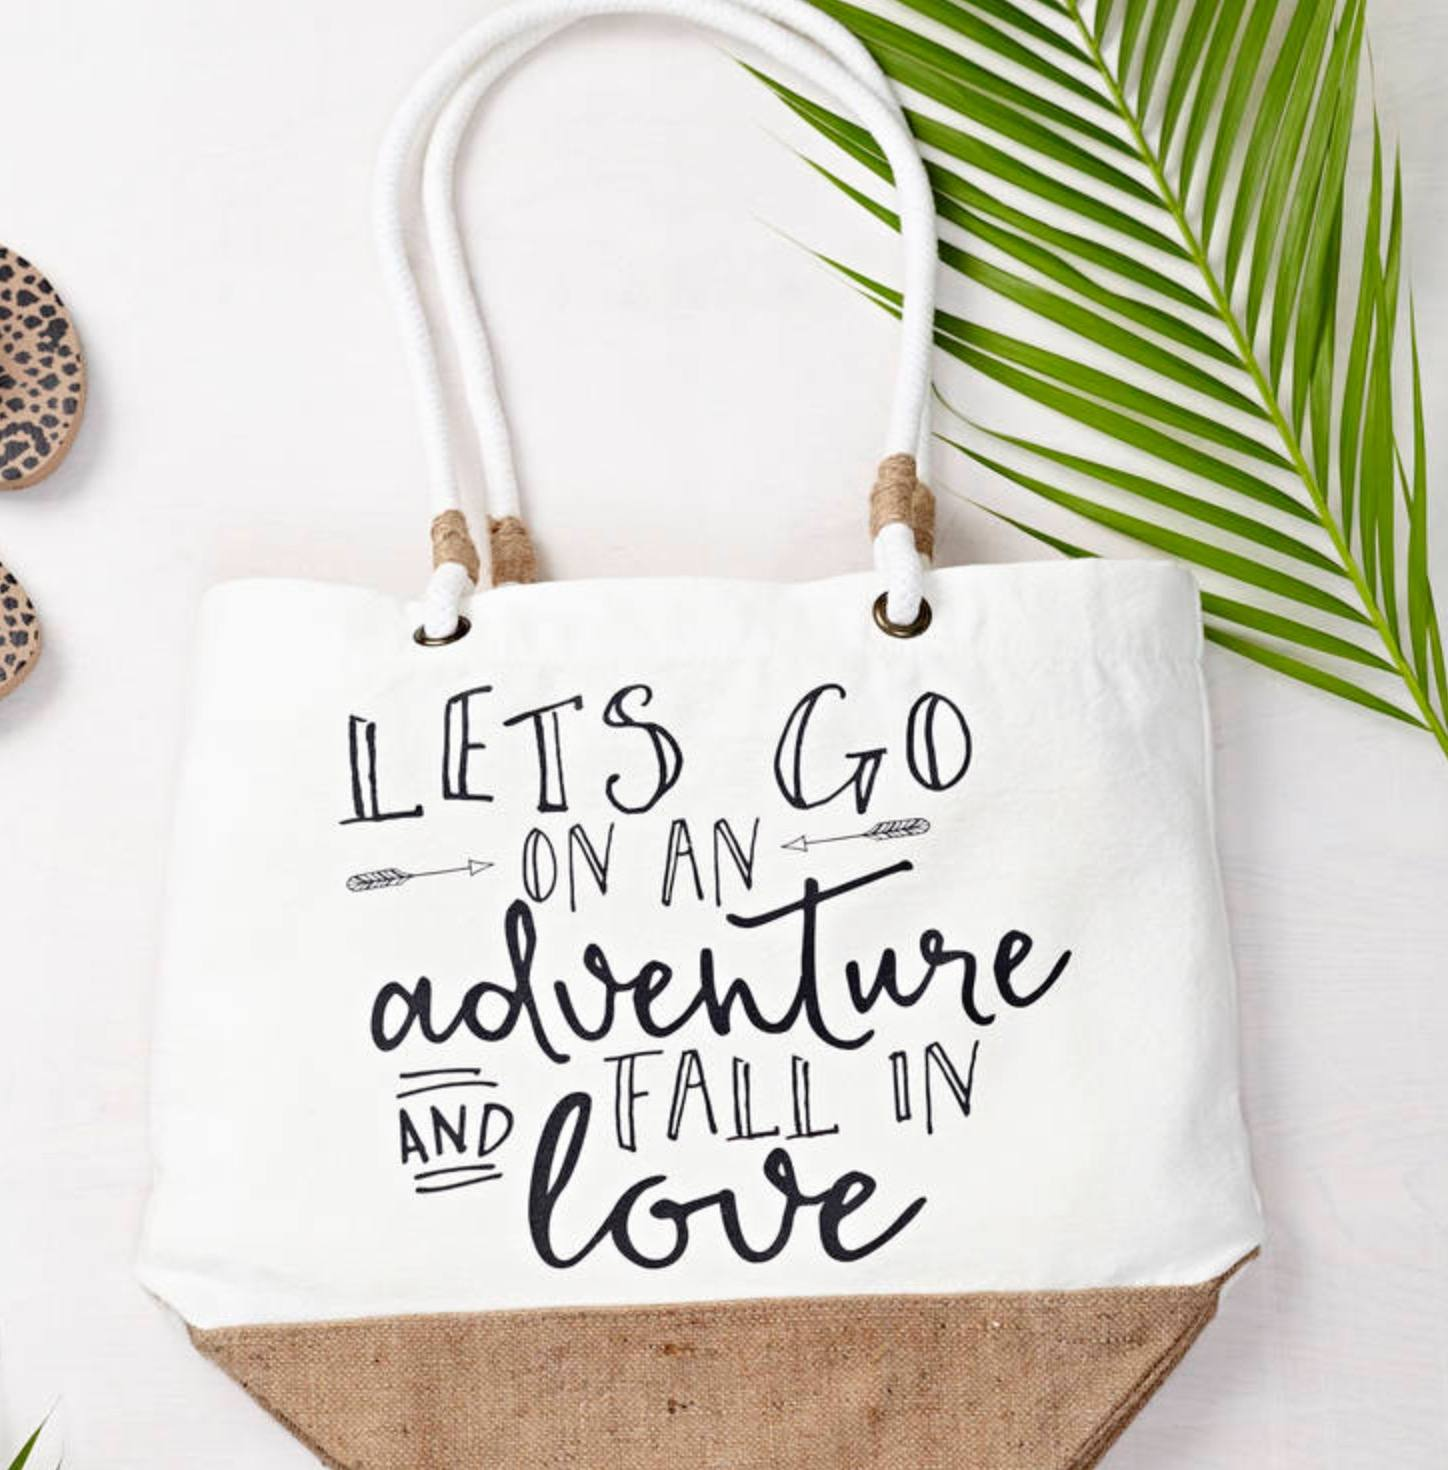 Beach bag with travel quote